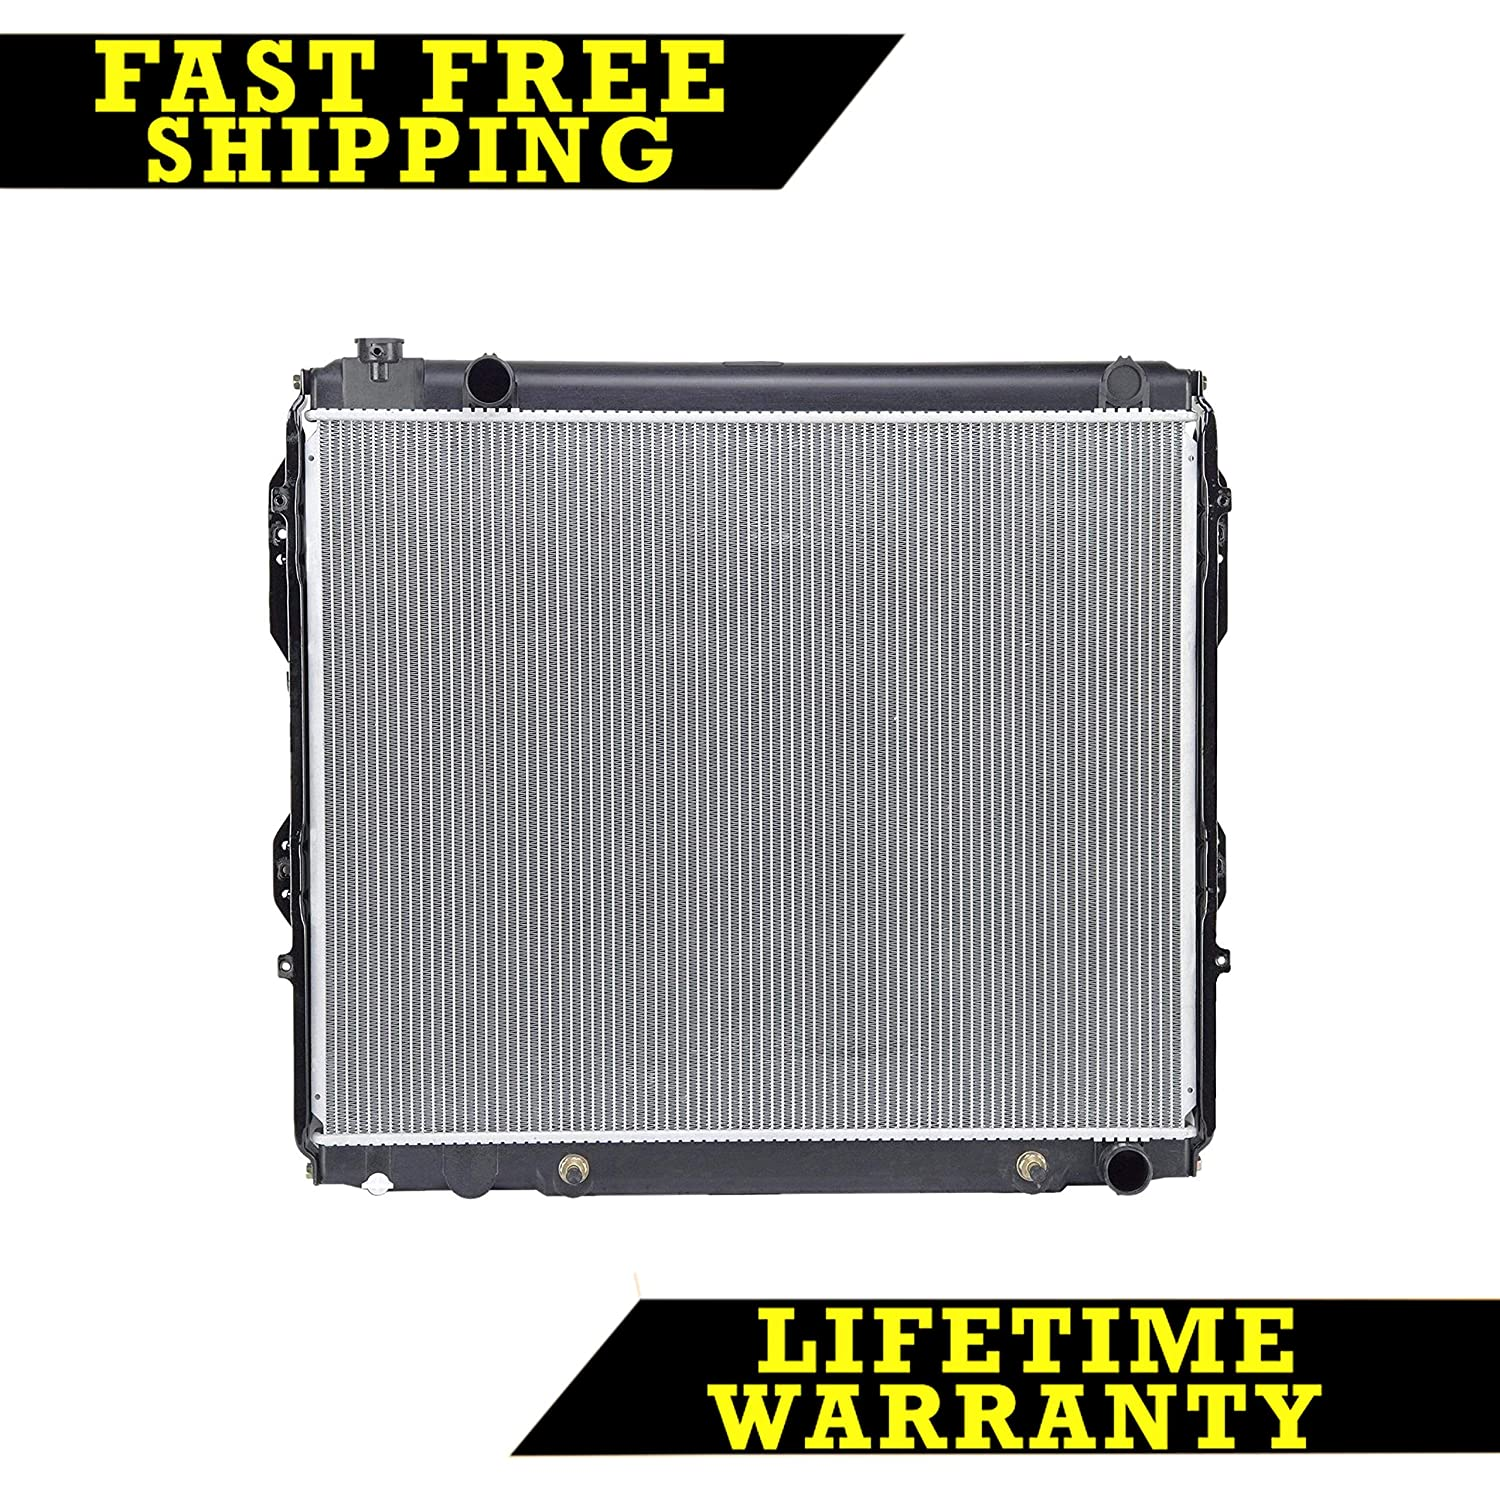 RADIATOR FOR TOYOTA FITS TUNDRA 4.7 V8 8CYL 22-5/8 INCH CORE HEIGHT 2321 Sunbelt Radiators